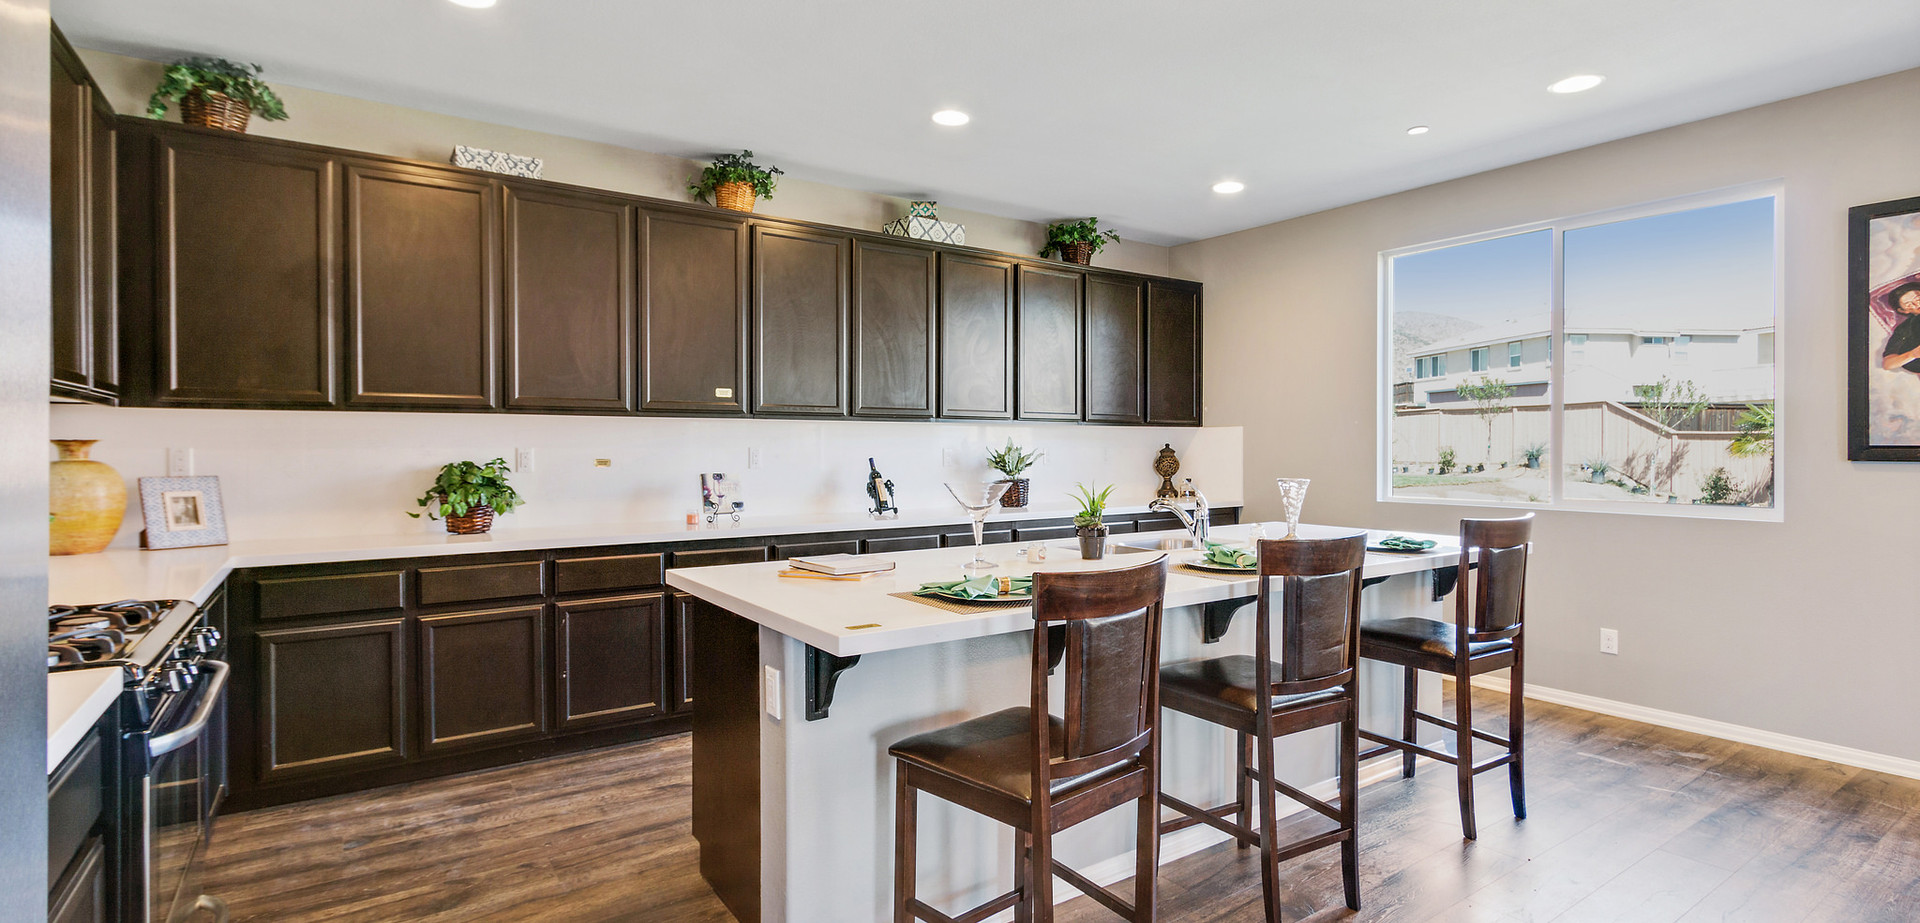 Oak Hills 1 - Plan 2 - Kitchen 2.jpg